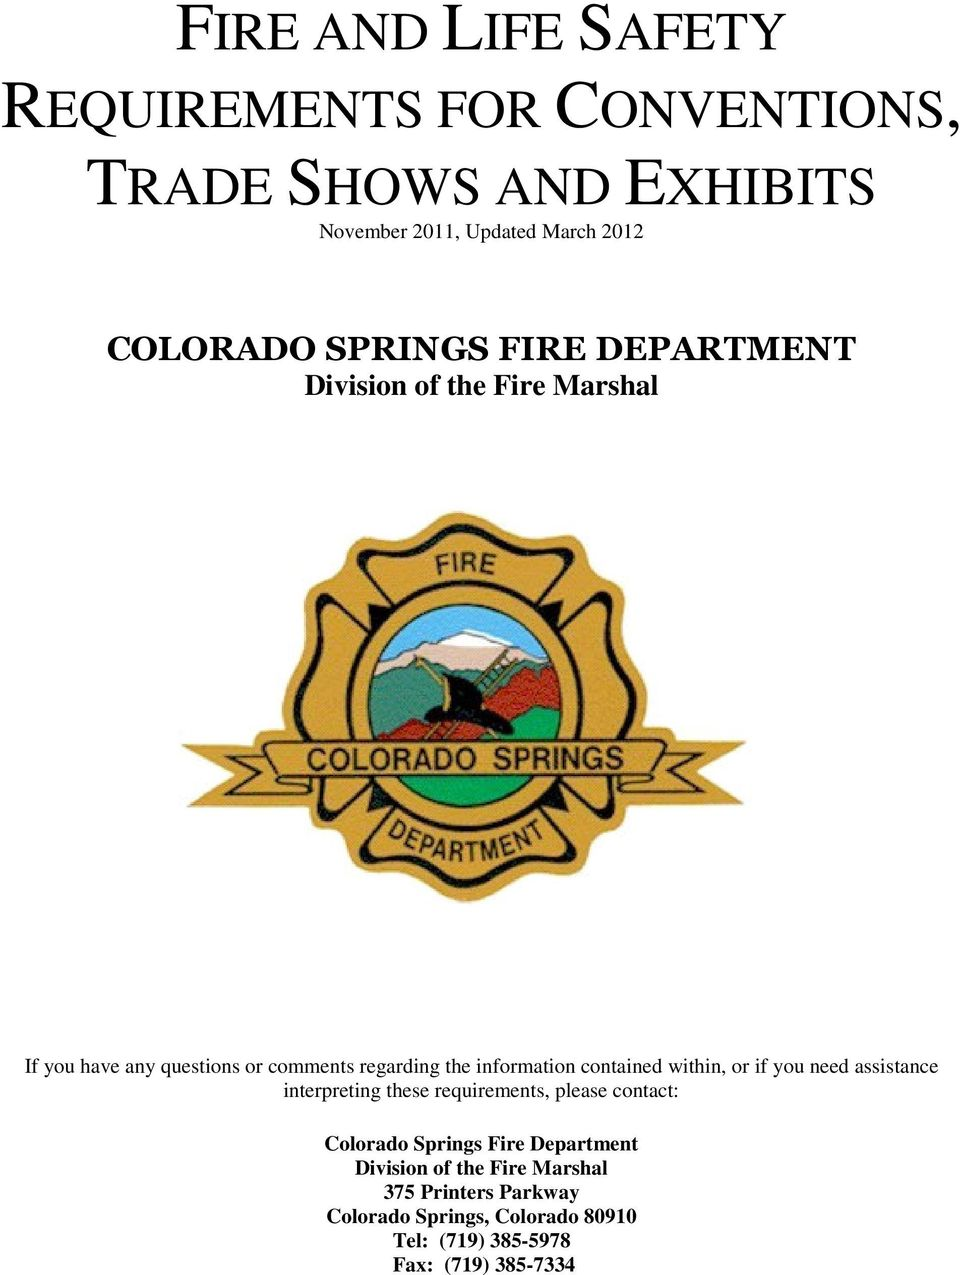 contained within, or if you need assistance interpreting these requirements, please contact: Colorado Springs Fire